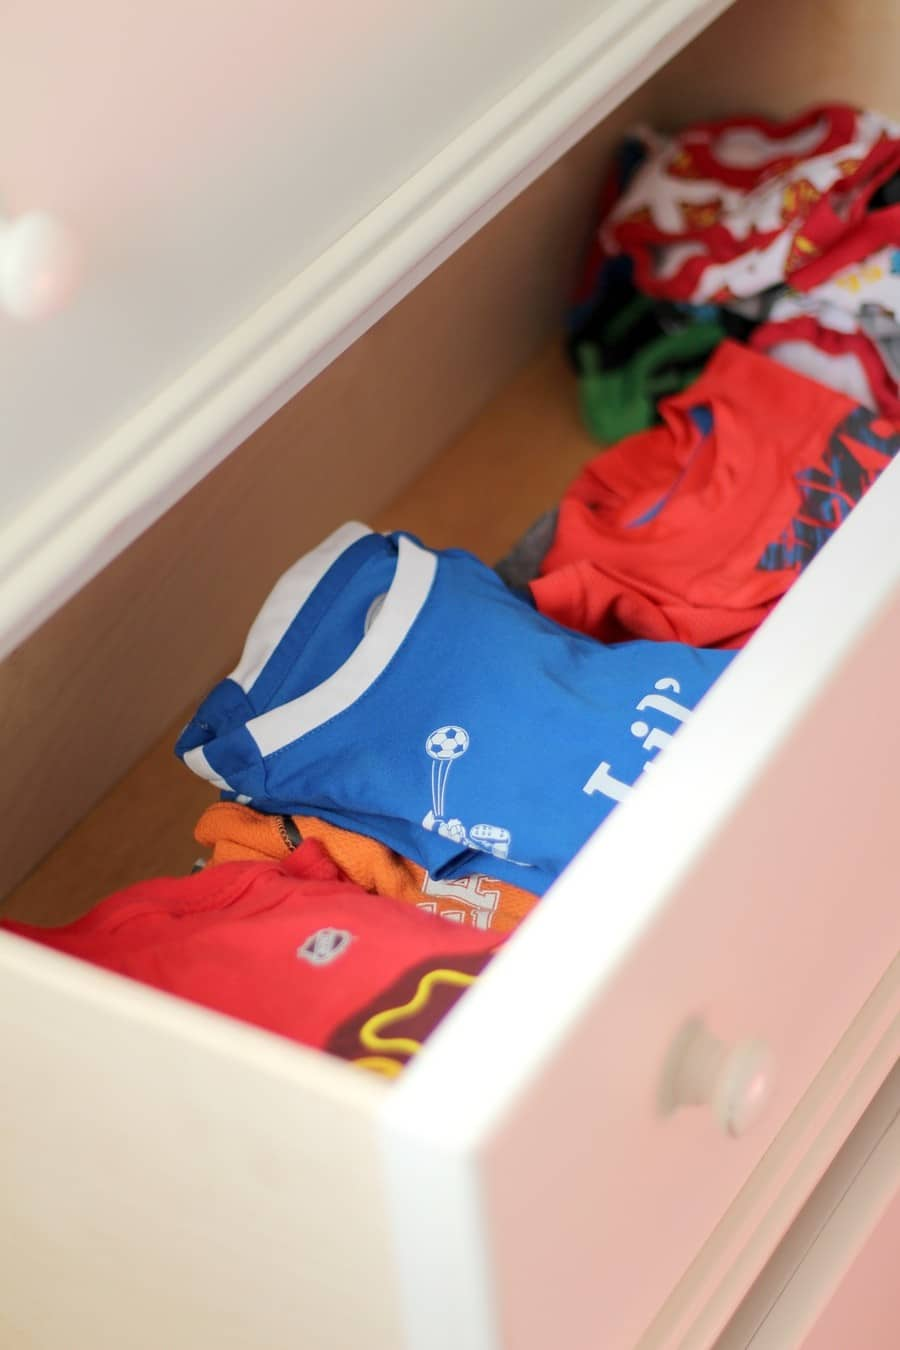 How To Organize Kids Drawers - Boys Drawers